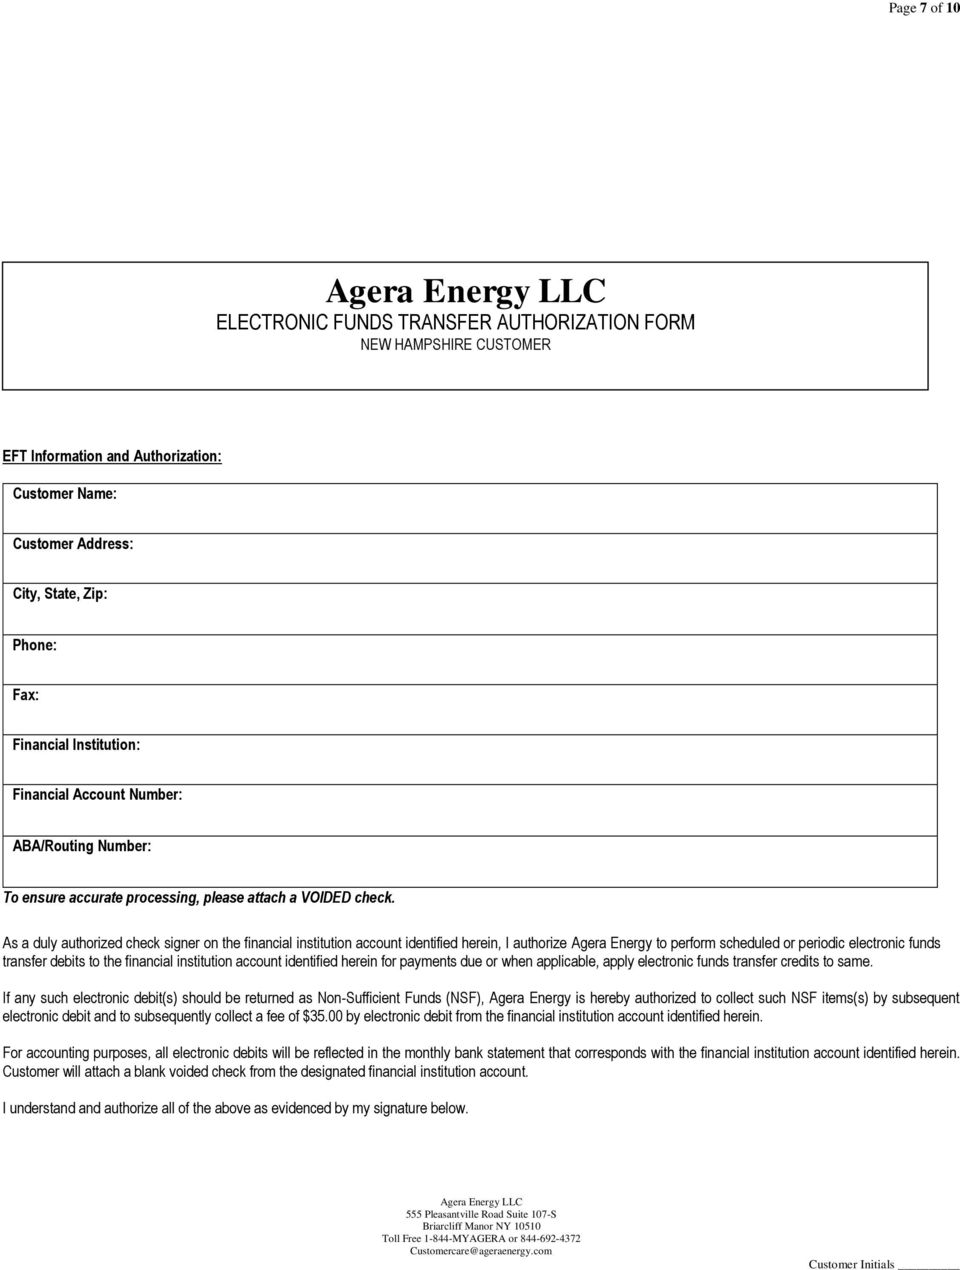 As a duly authorized check signer on the financial institution account identified herein, I authorize Agera Energy to perform scheduled or periodic electronic funds transfer debits to the financial